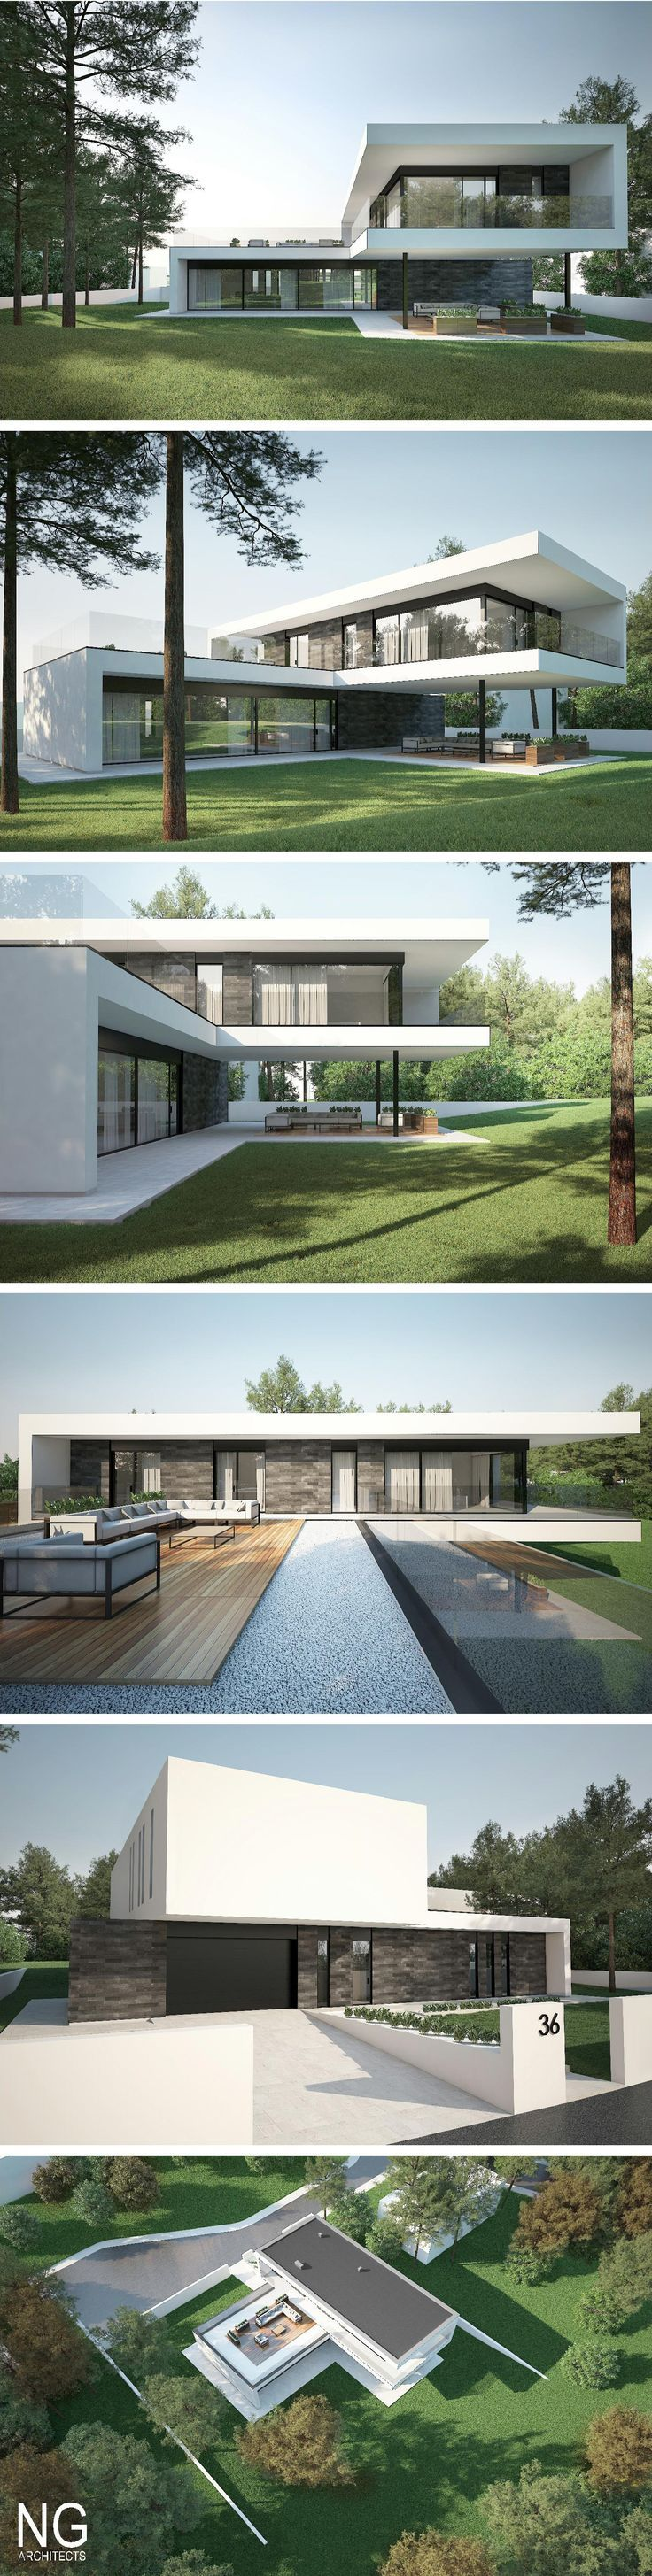 ^ 1000+ ideas about Modern Home Design on Pinterest Design homes ...